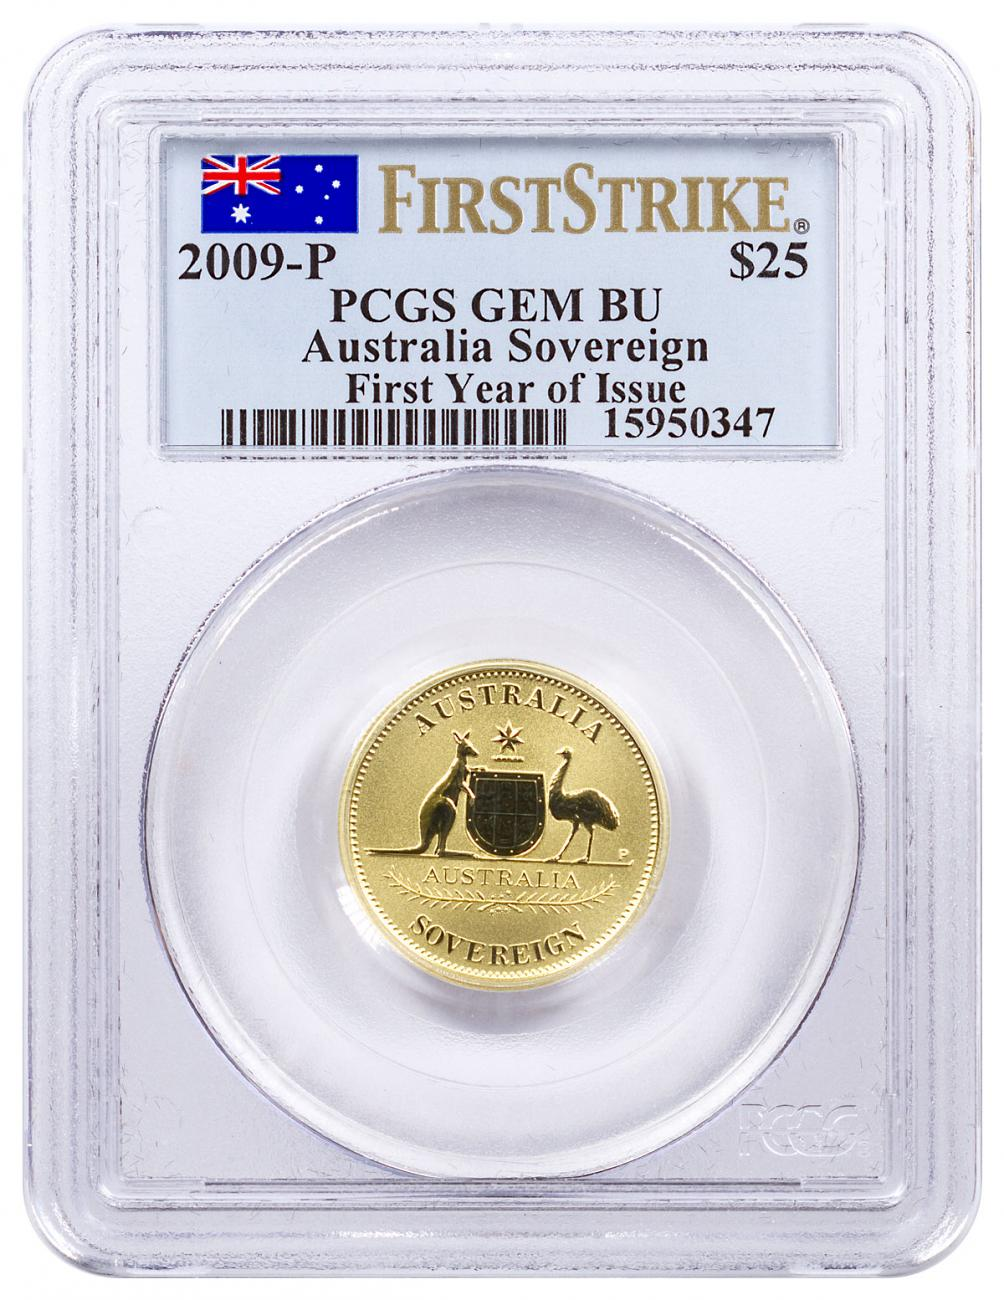 2009-P Australia Gold Sovereign $25 PCGS GEM BU FS Flag Label